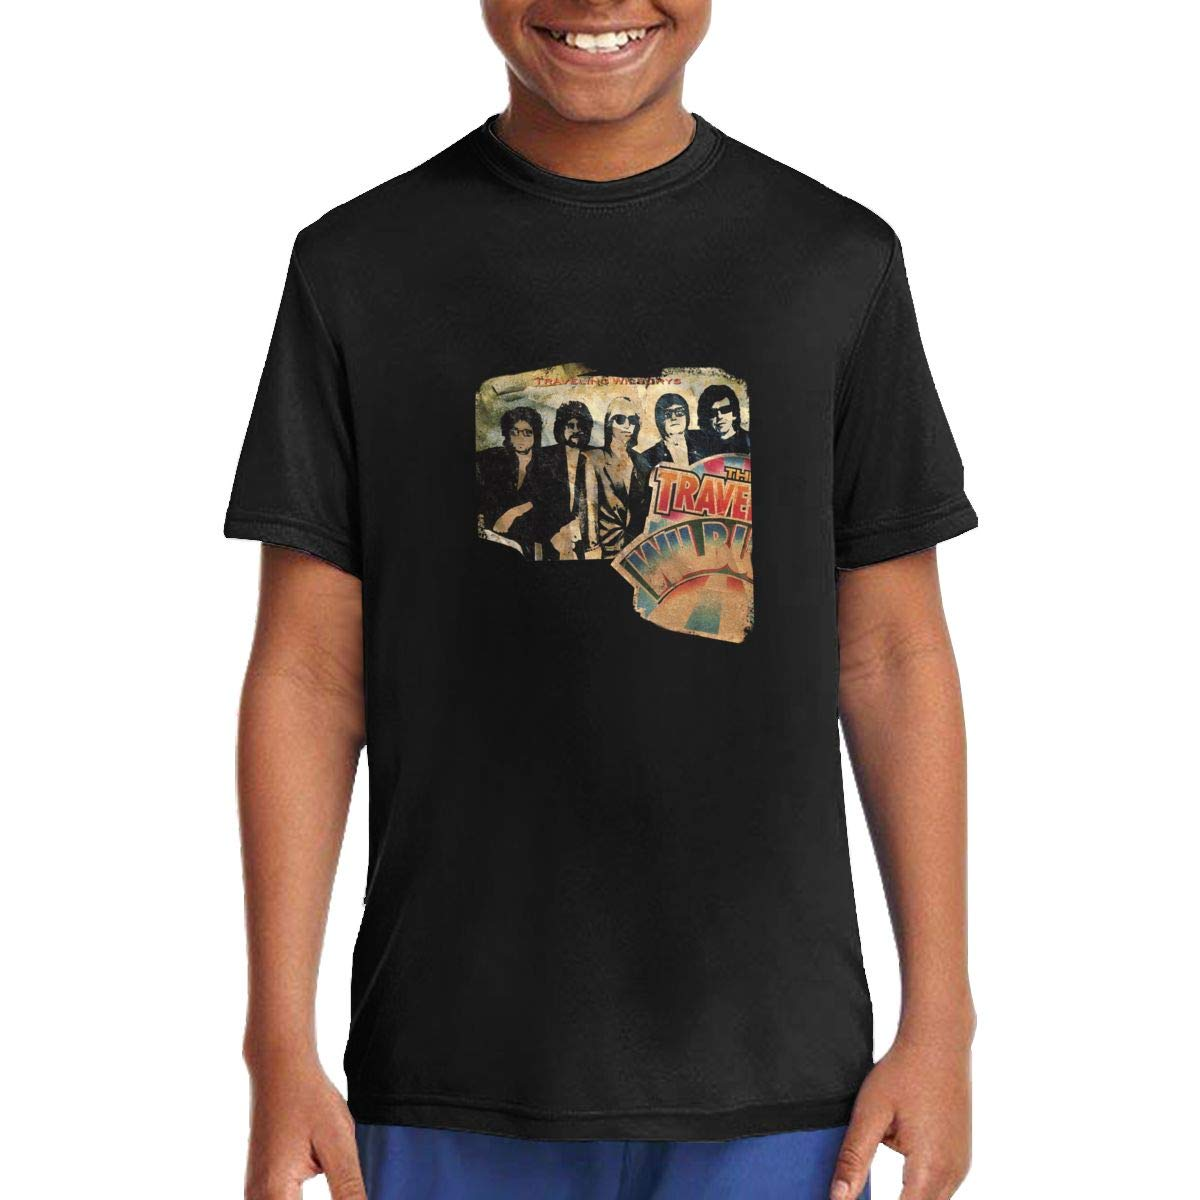 MoiqhHUswss The Traveling Wilburys Children T Shirts Short Sleeve Tees Boys Girls